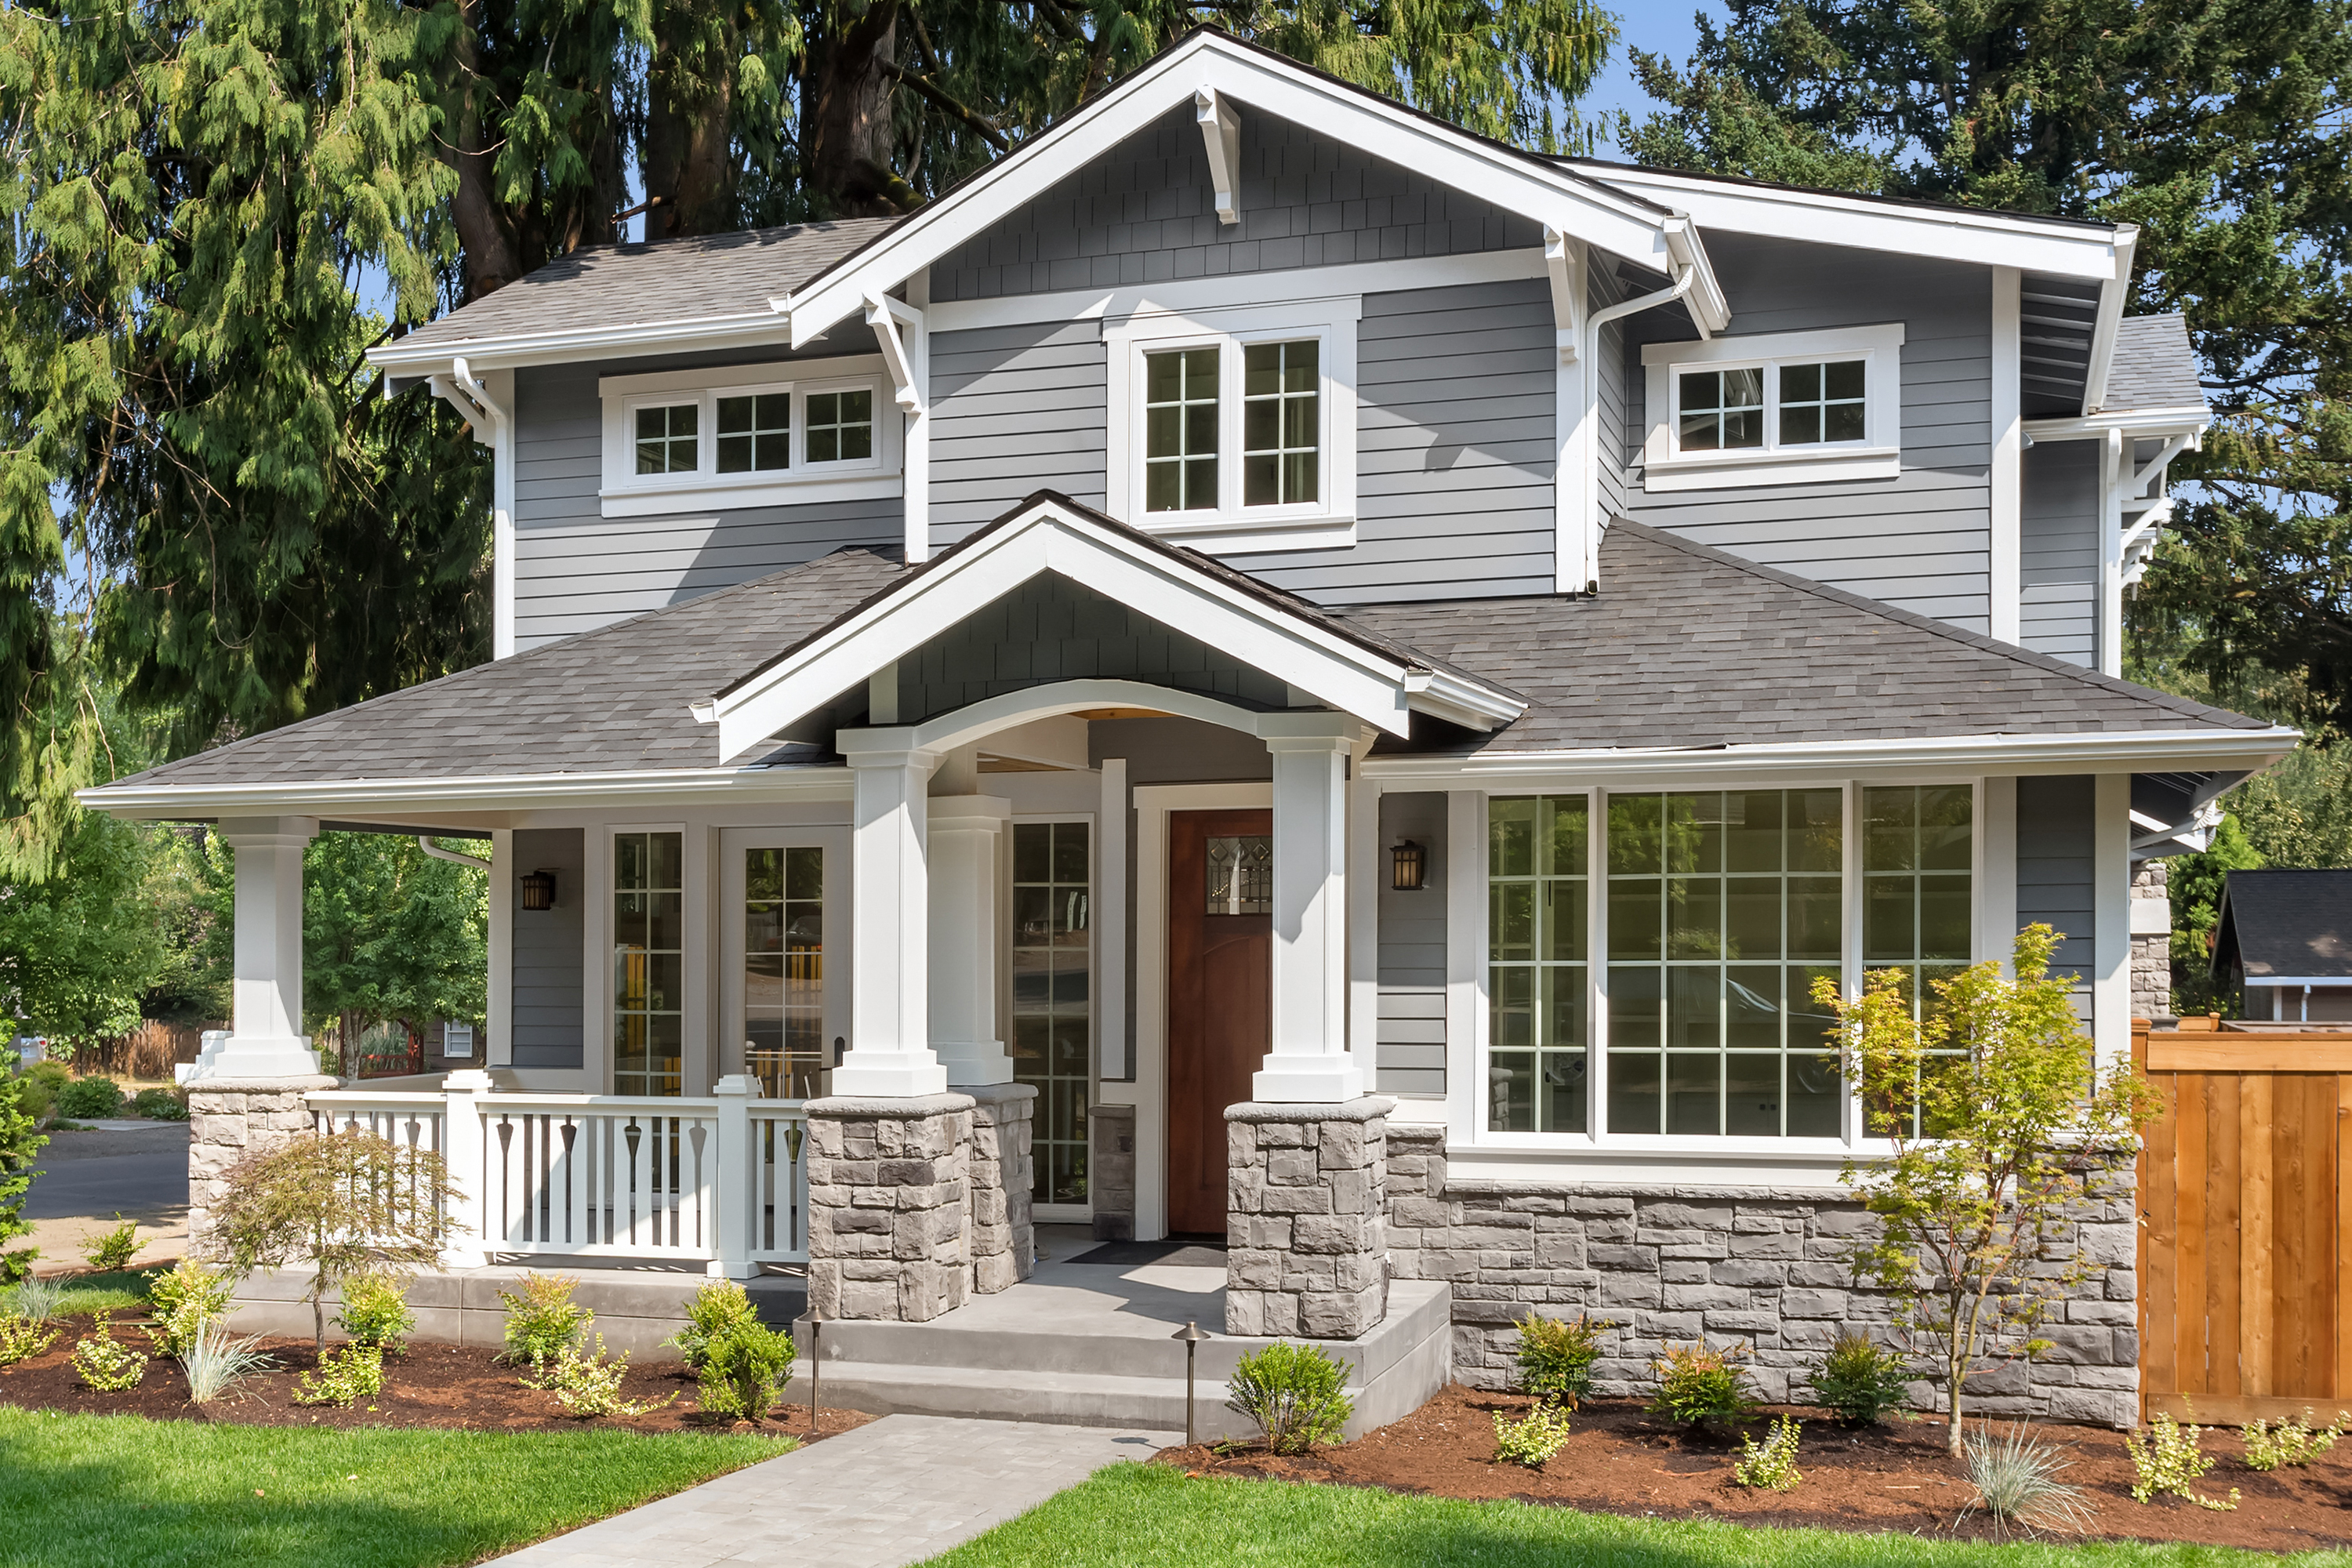 Gray painted home.